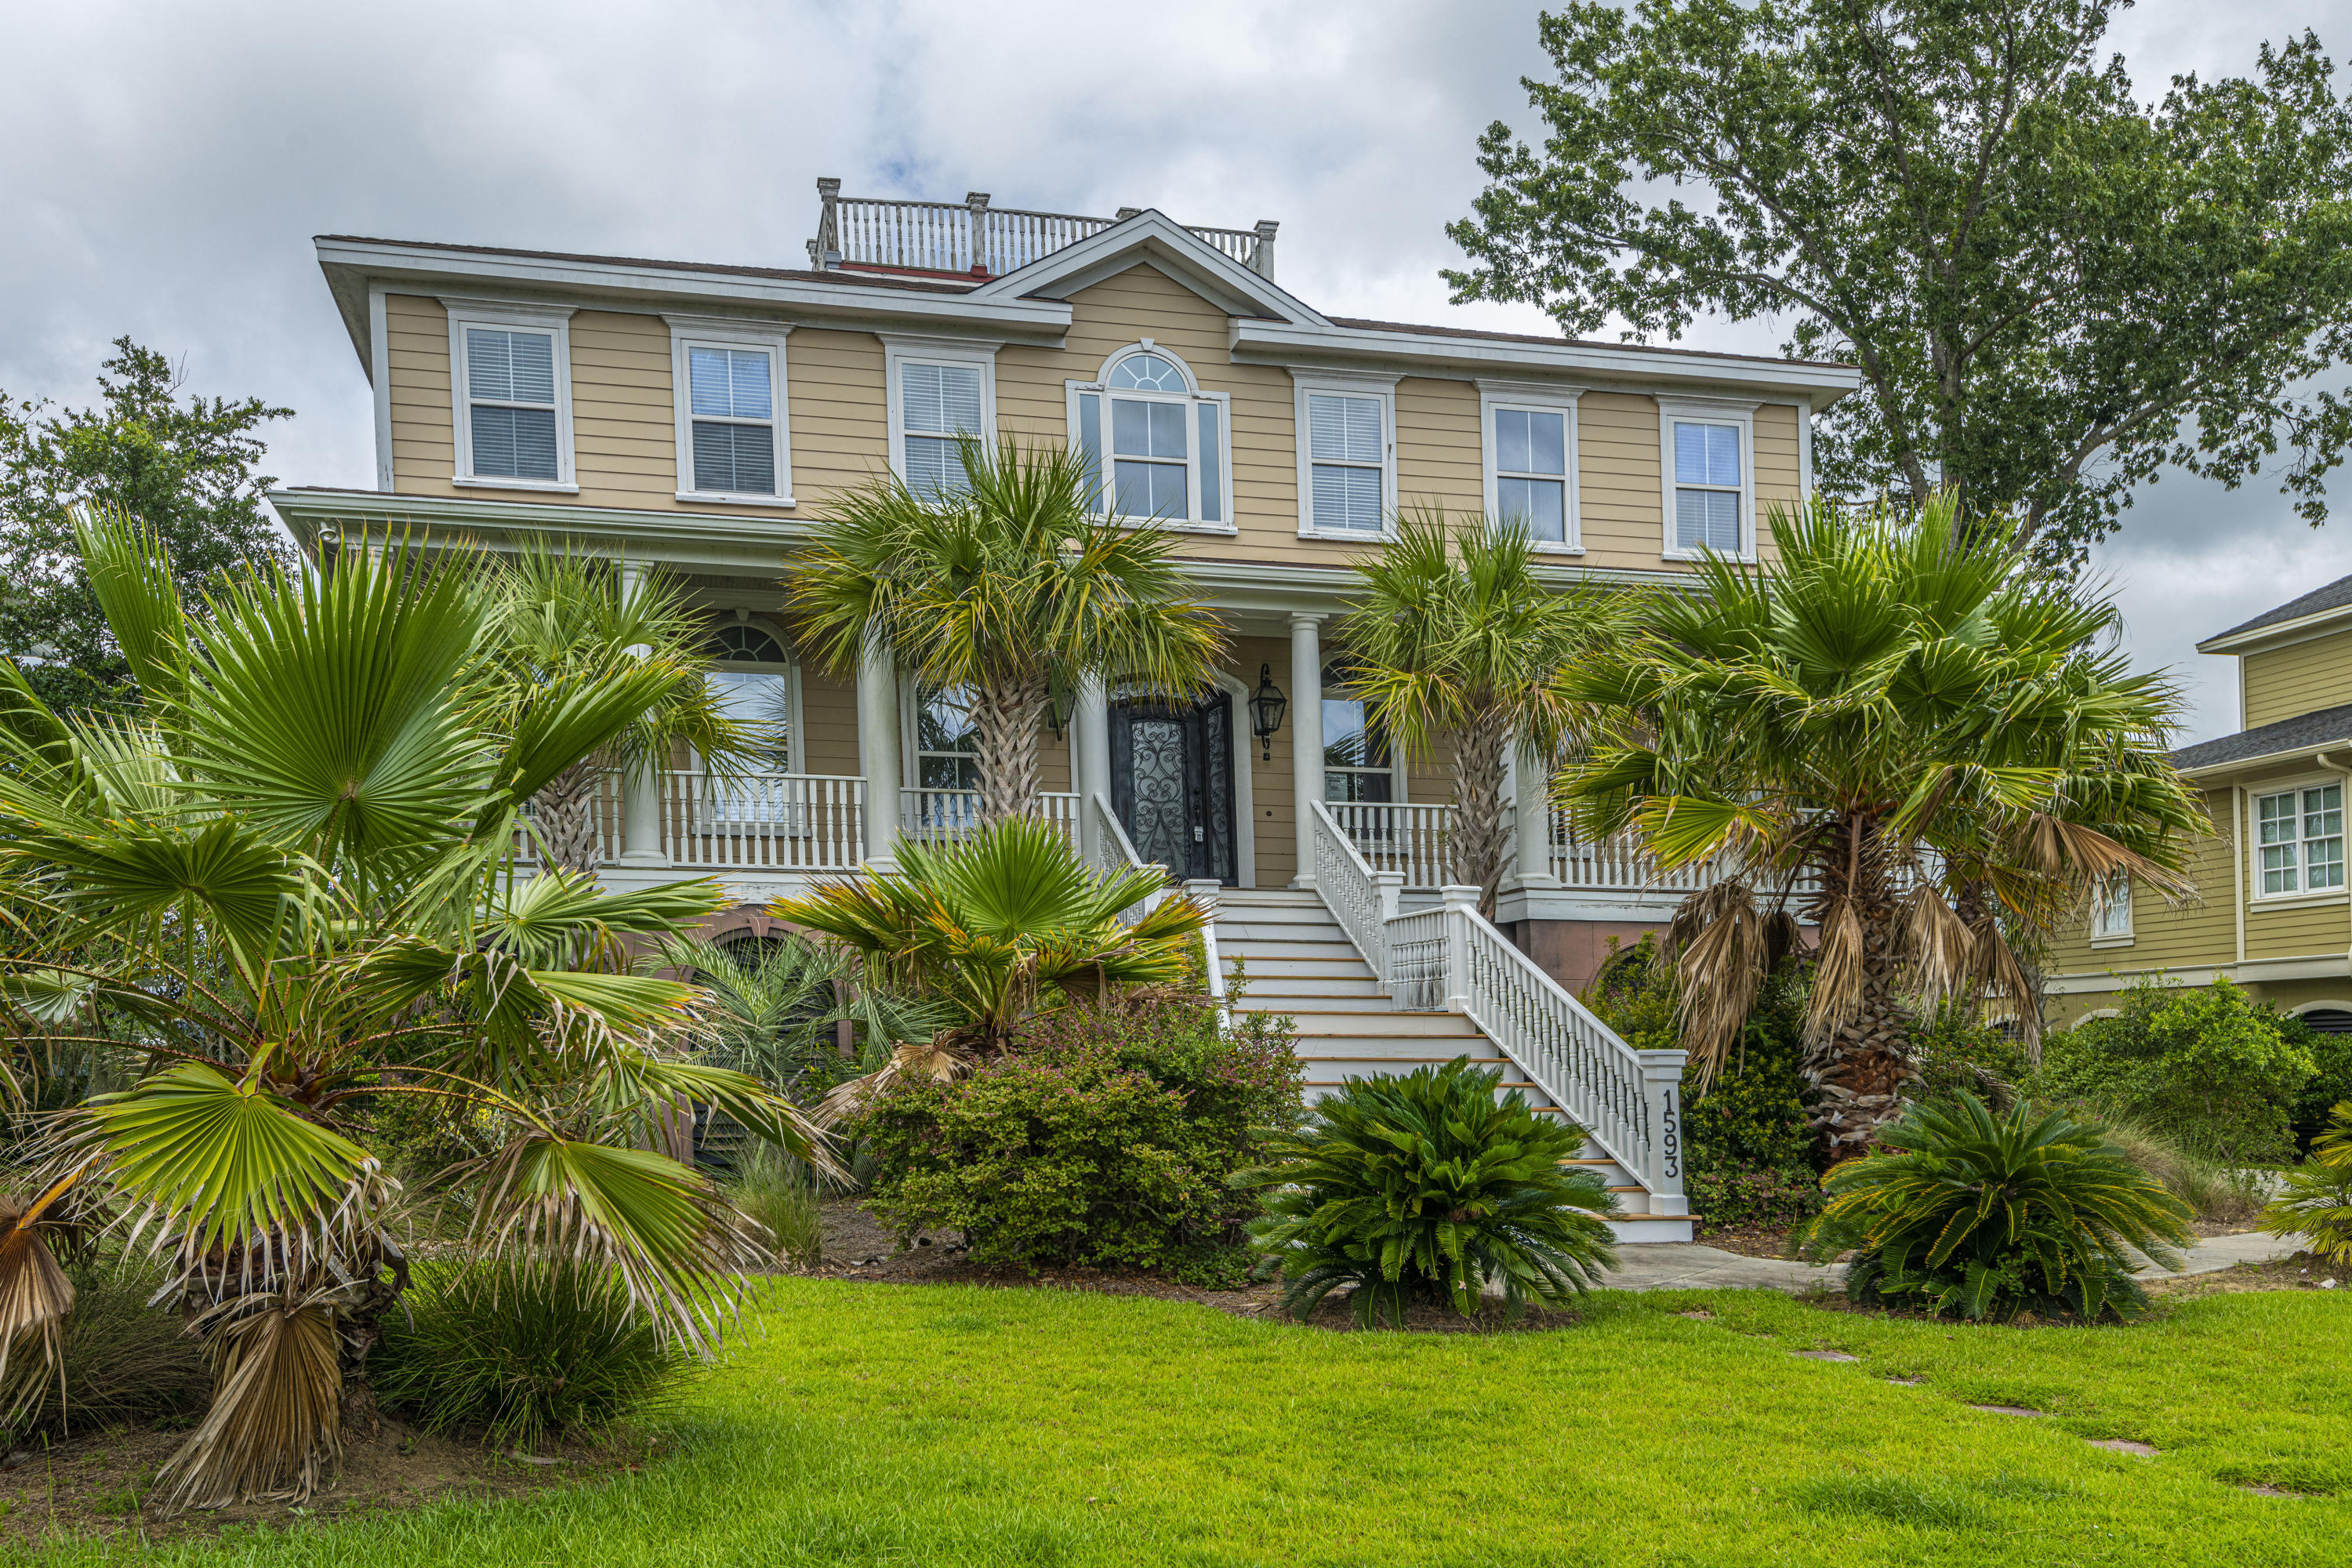 Rivertowne Country Club Homes For Sale - 1593 Rivertowne Country Club, Mount Pleasant, SC - 10